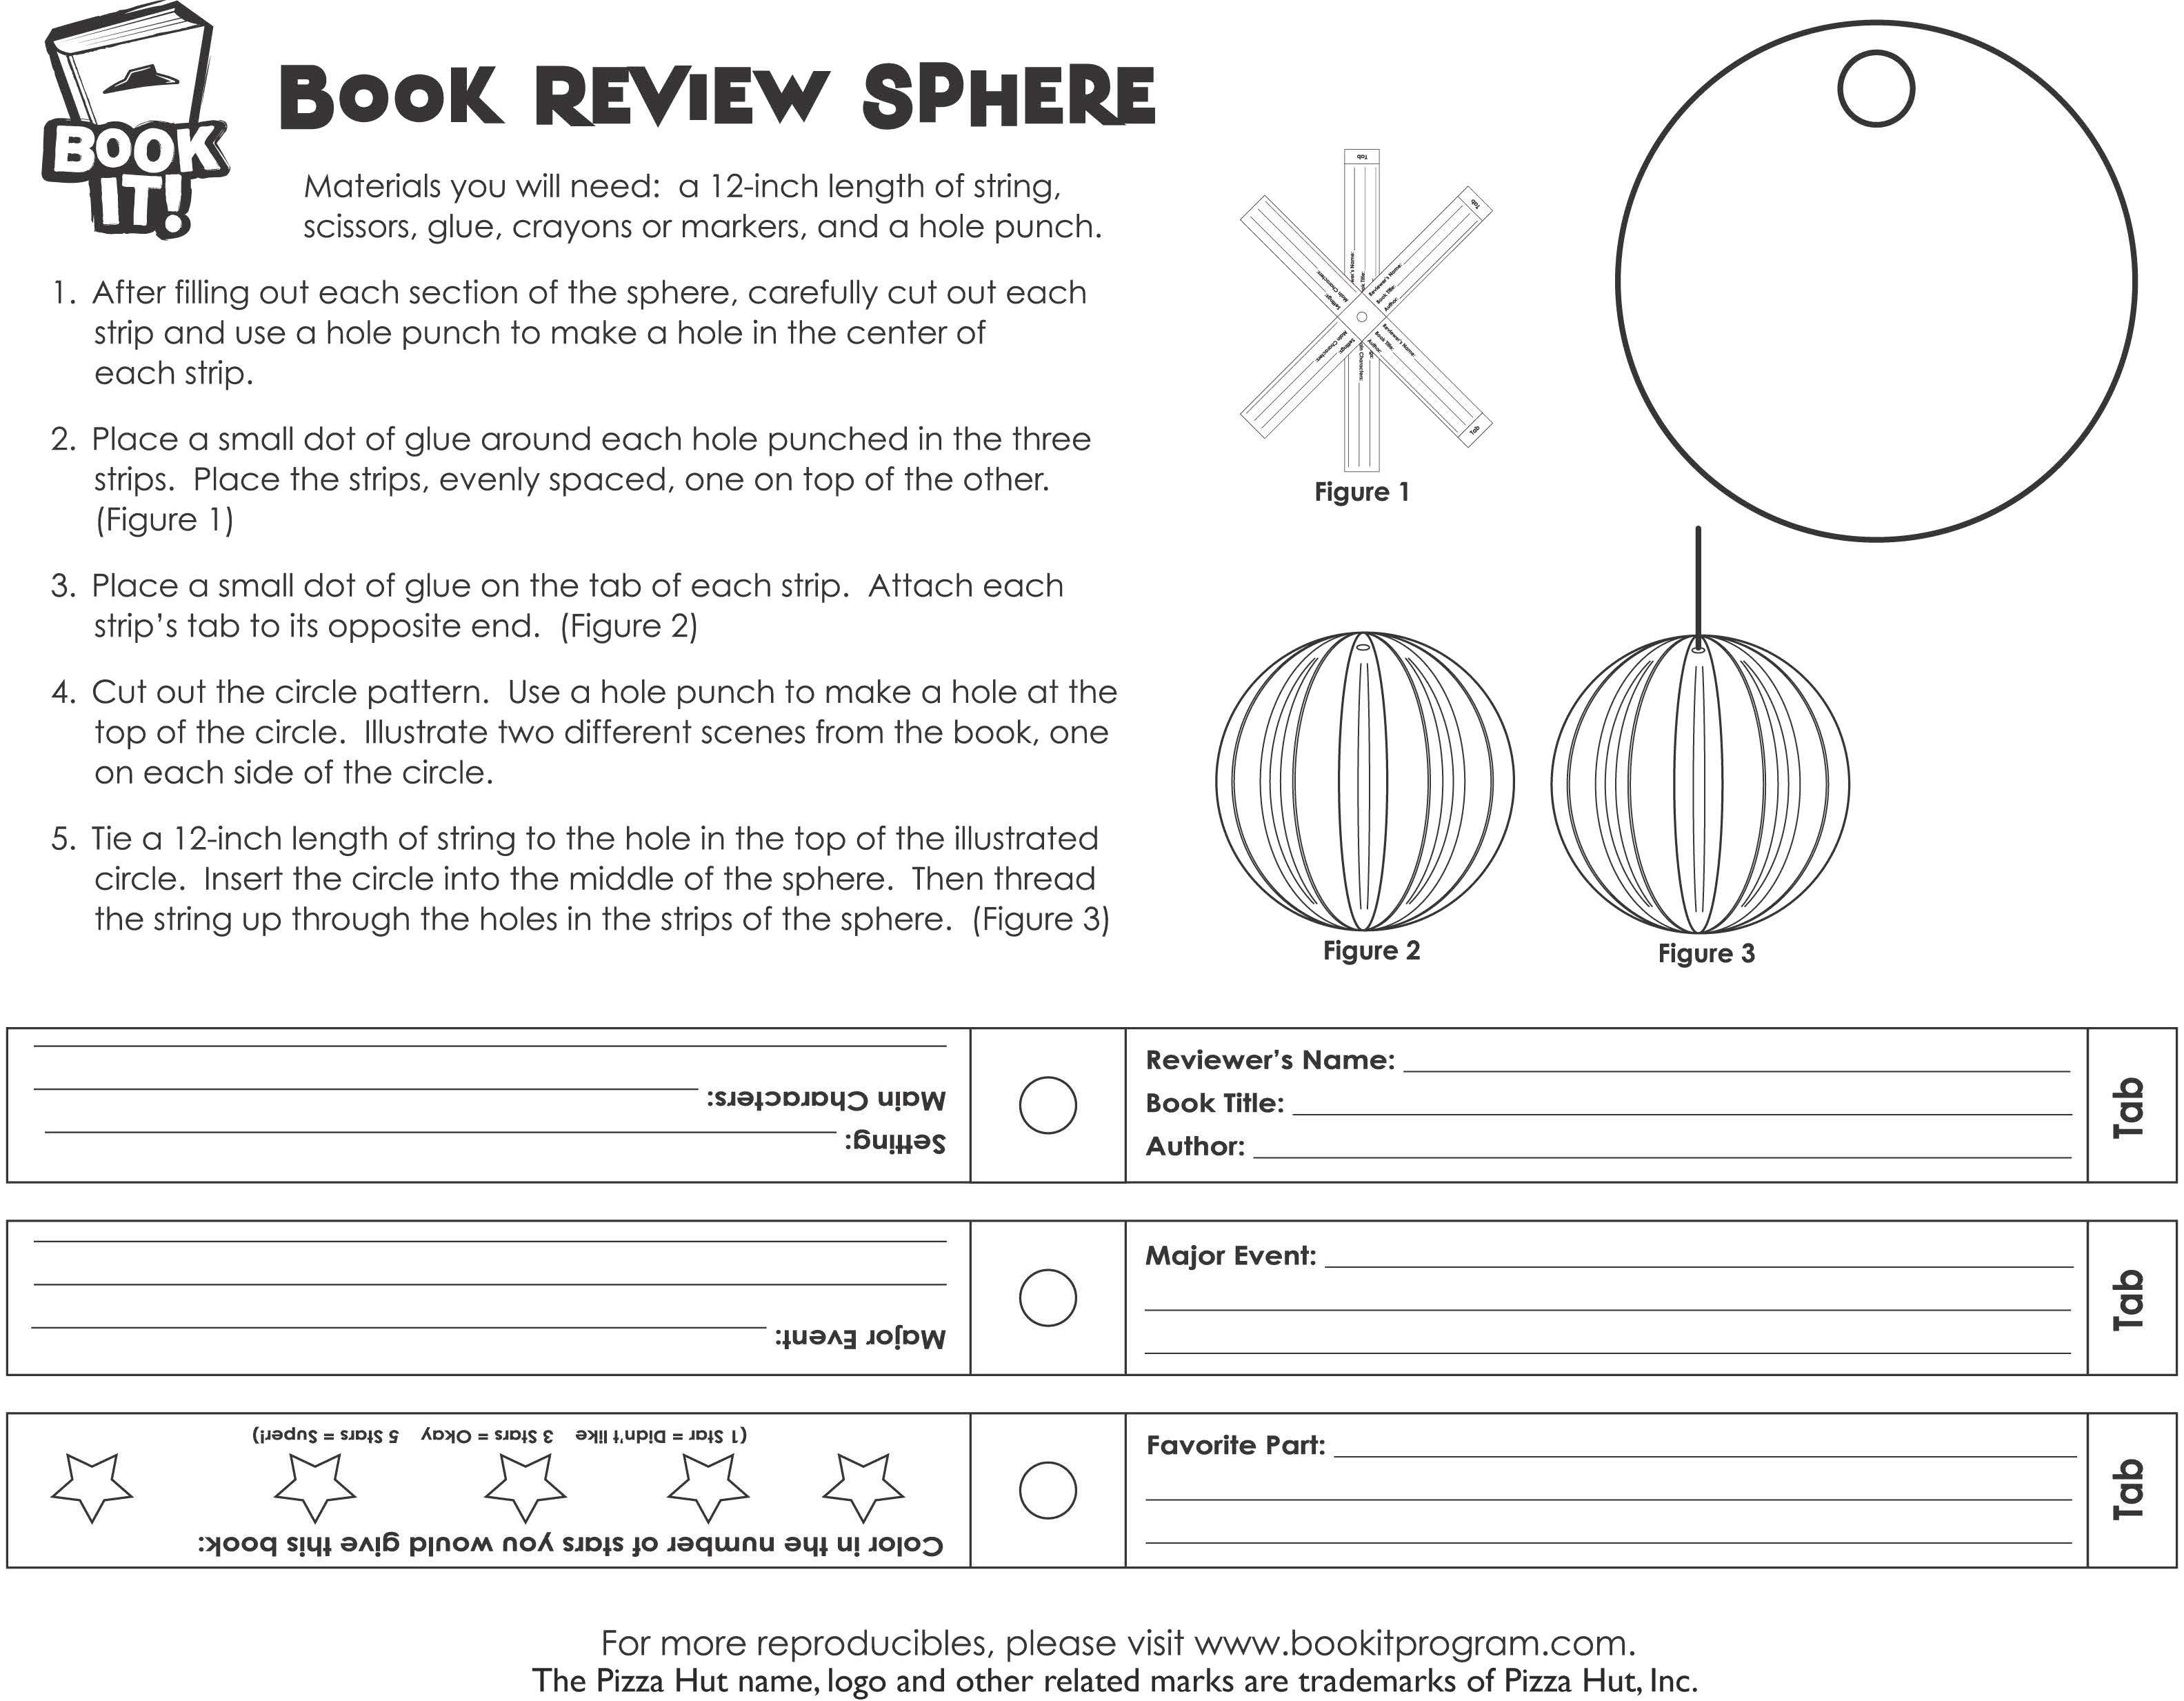 Bring A Visual Aspect To Your Everyday Book Reviews With